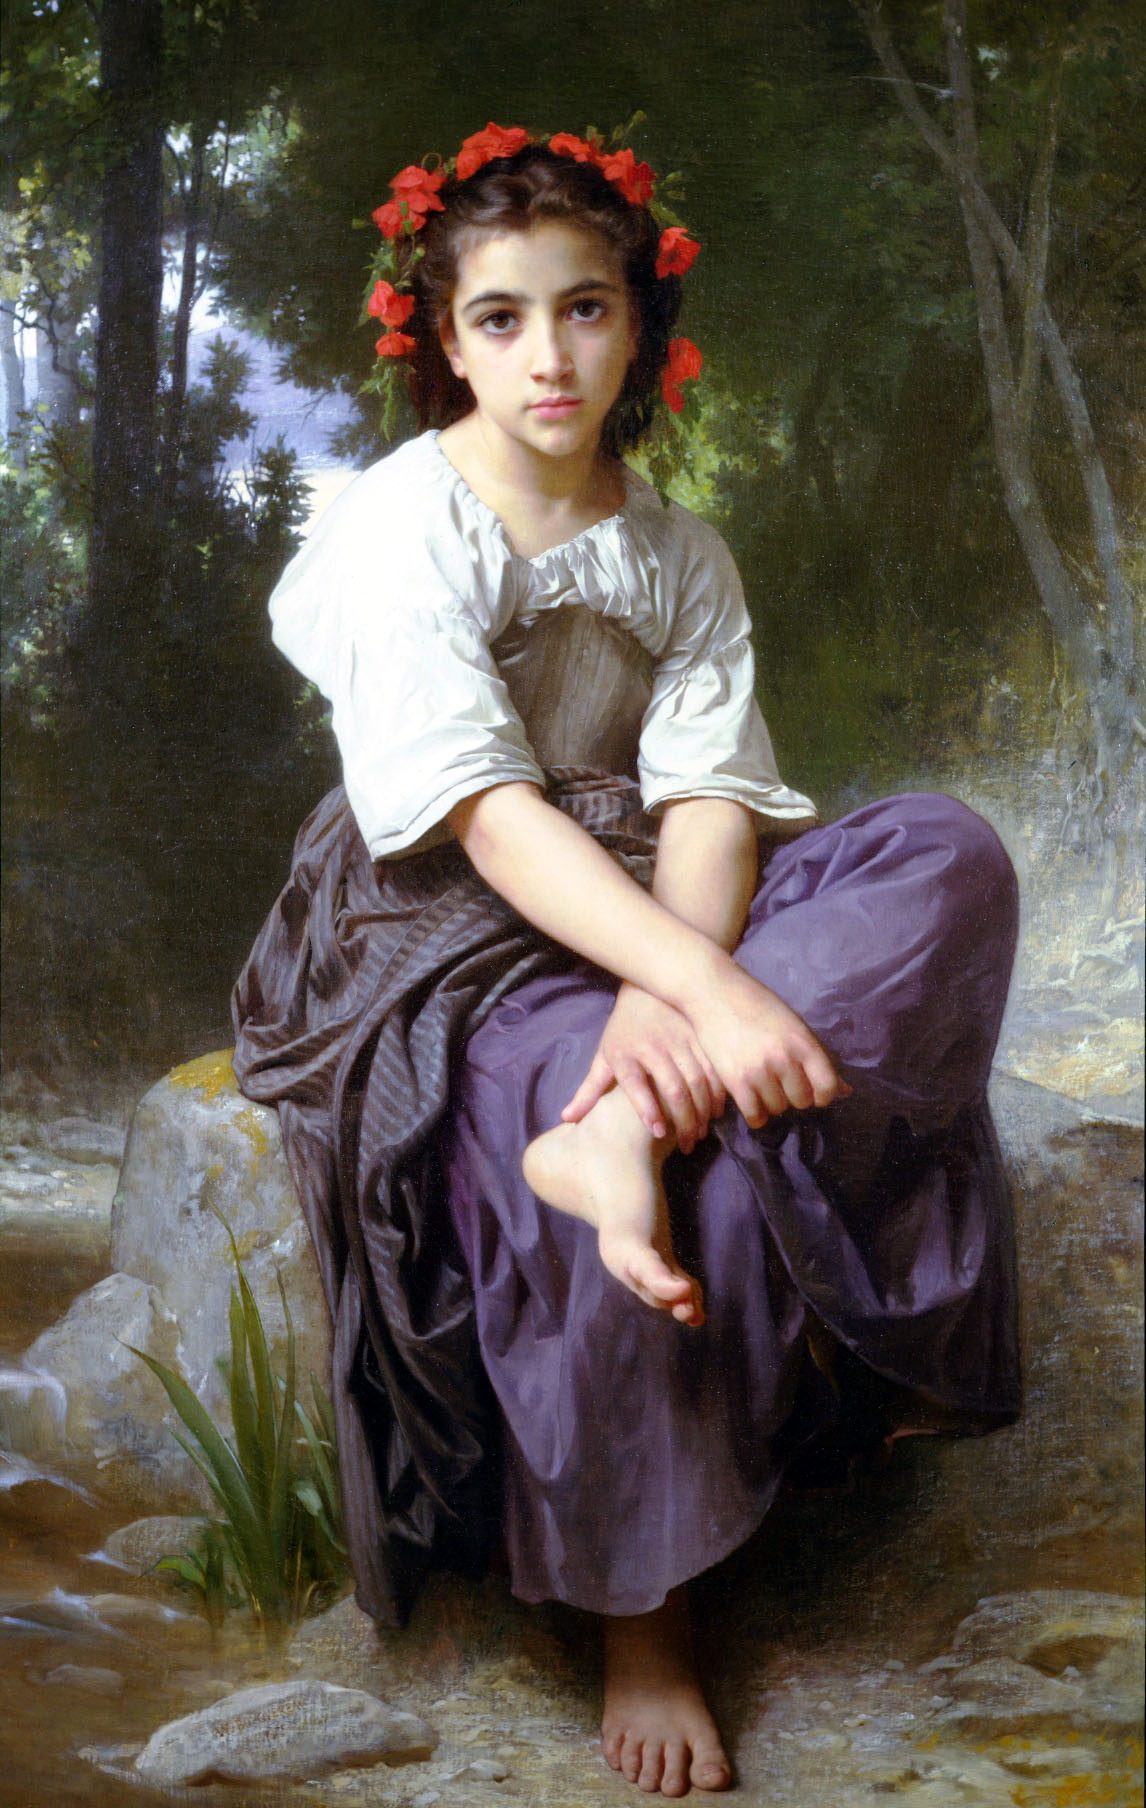 http://uploads8.wikiart.org/images/william-adolphe-bouguereau/at-the-edge-of-the-brook-1875.jpg